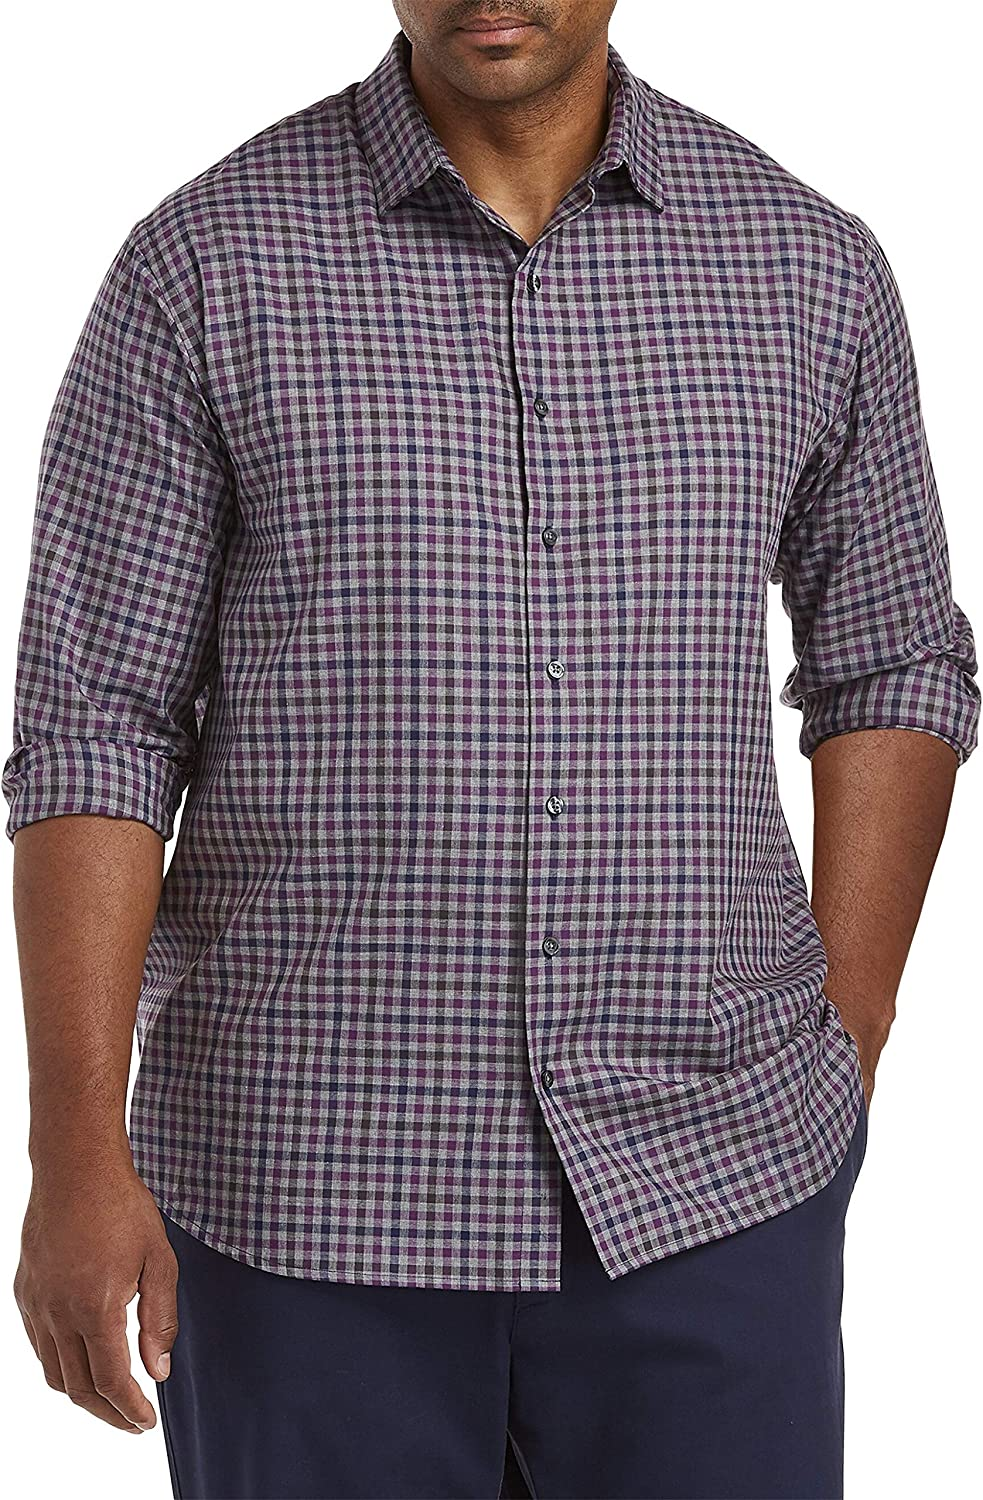 DXL Synrgy Big and Tall Plaid Sport Shirt, Smoked Pearl